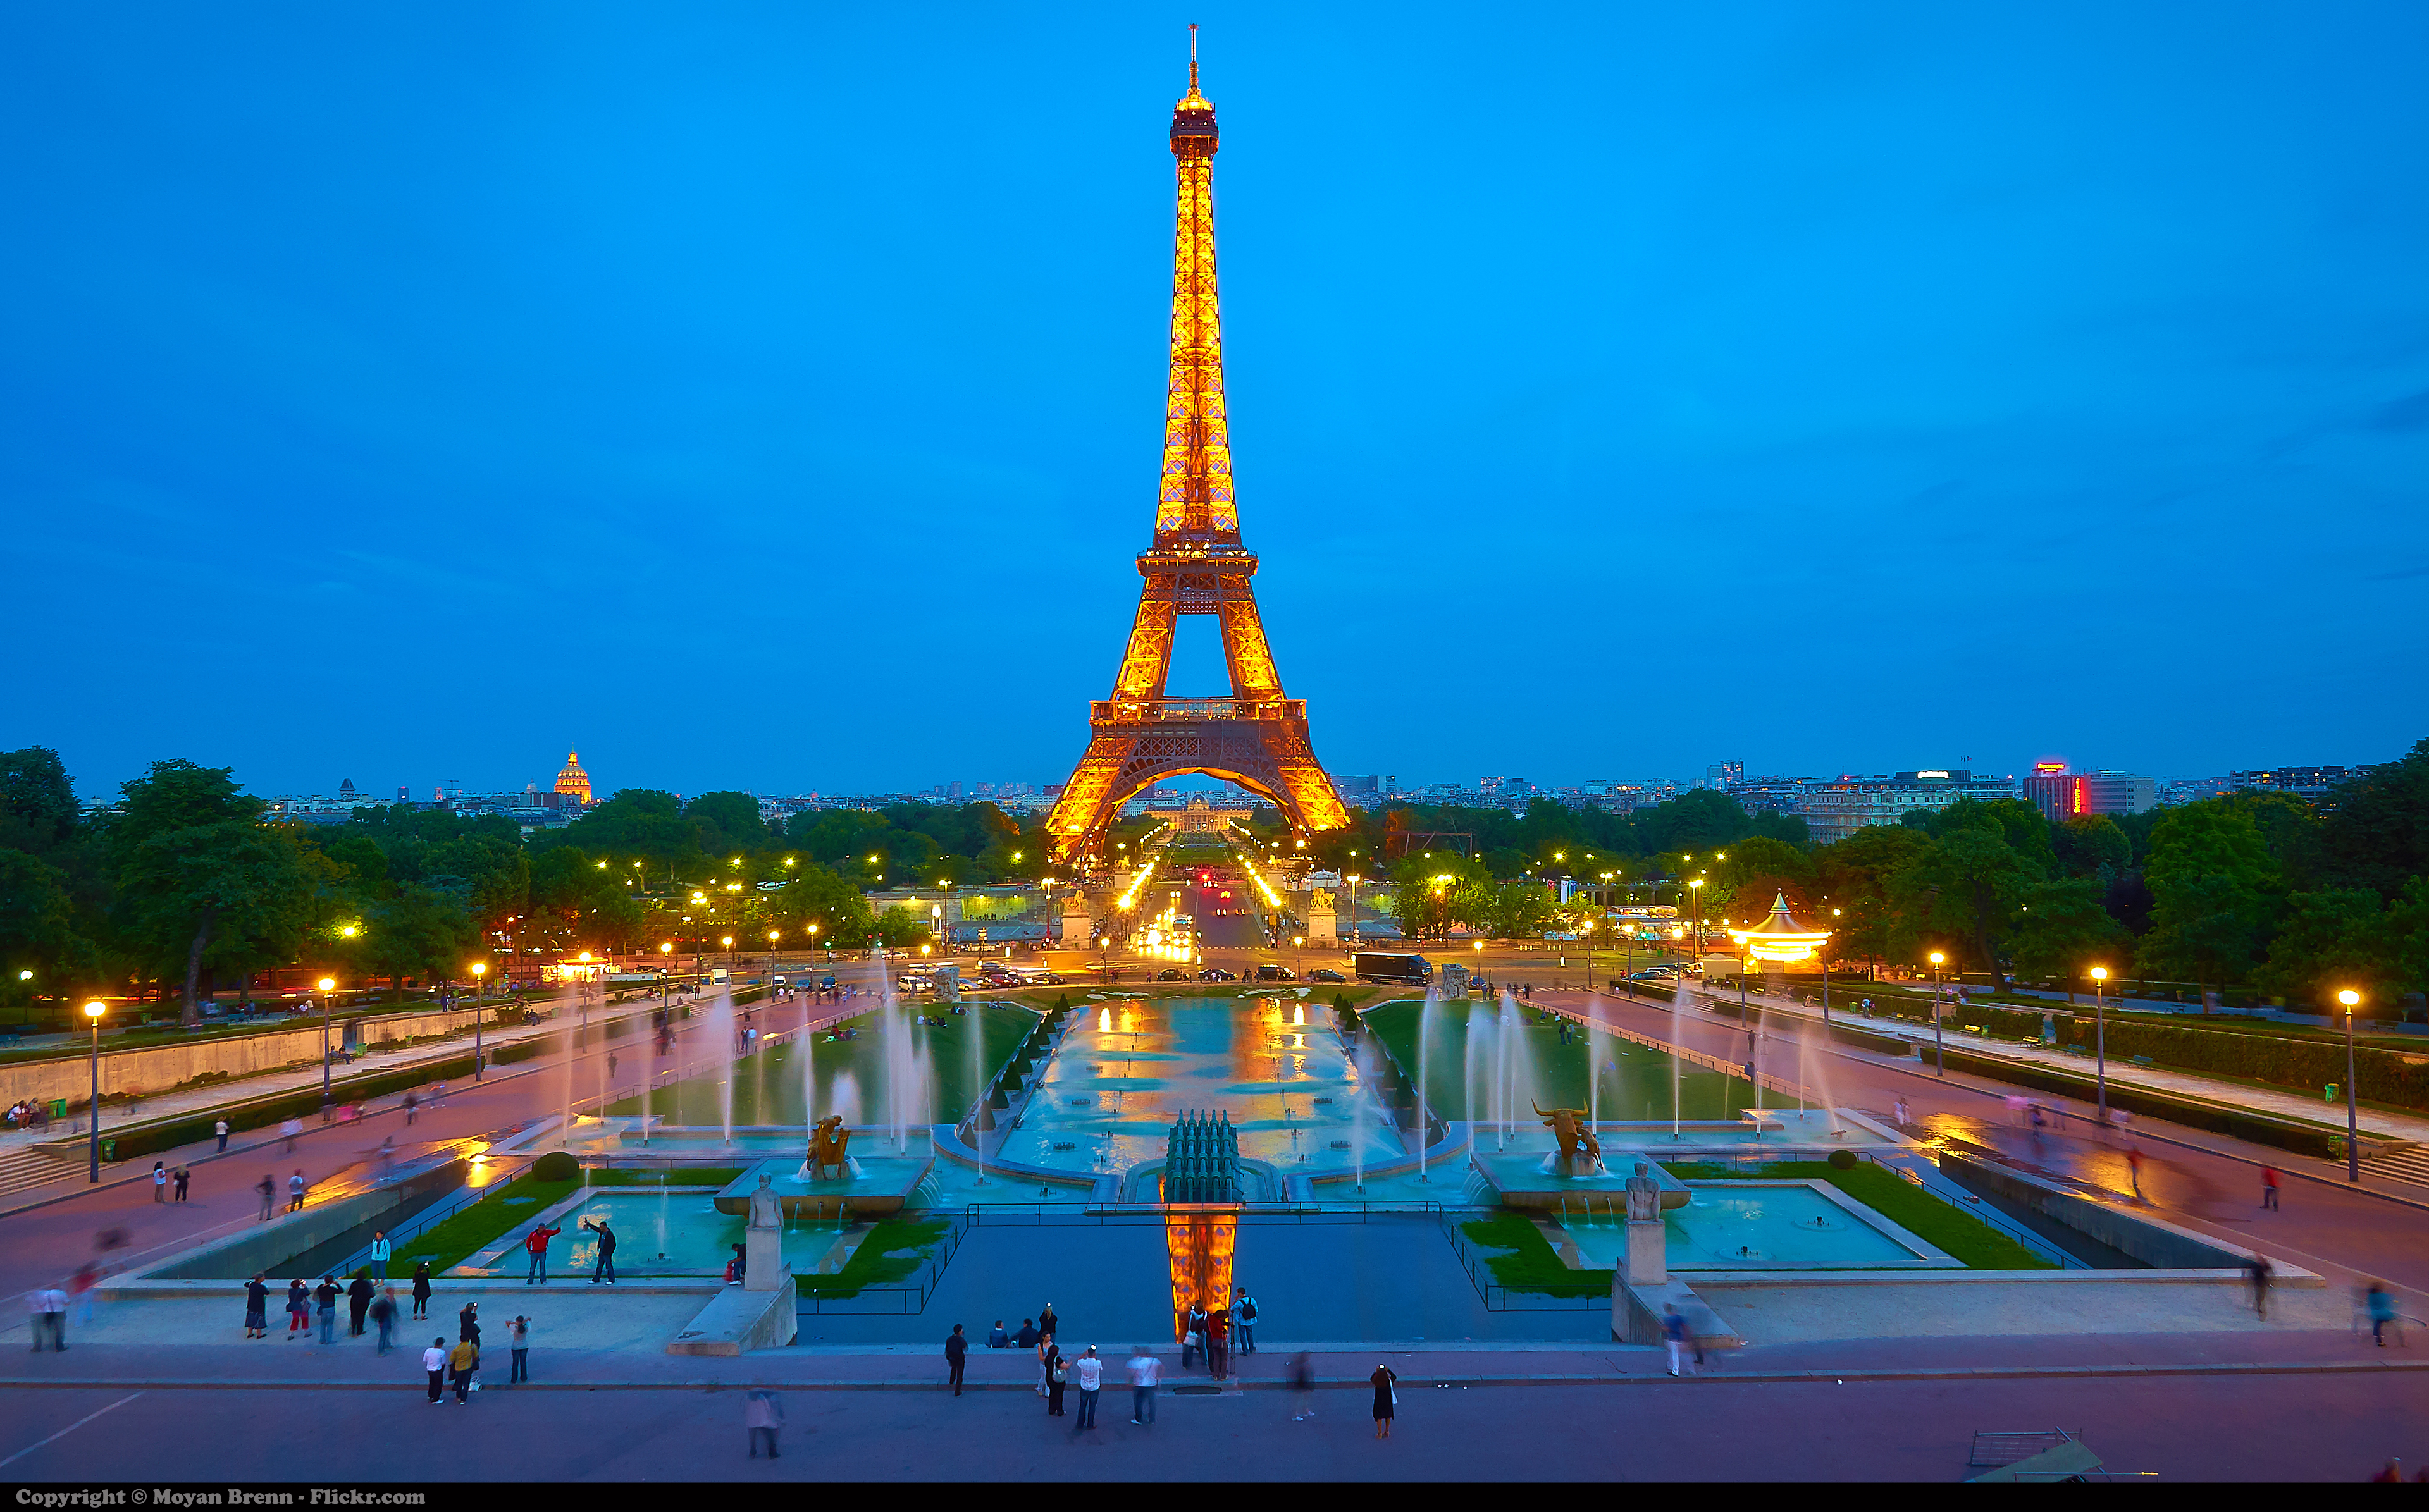 20 Wonderful Eiffel Tower Facts You Should Know - Travel & Pleasure